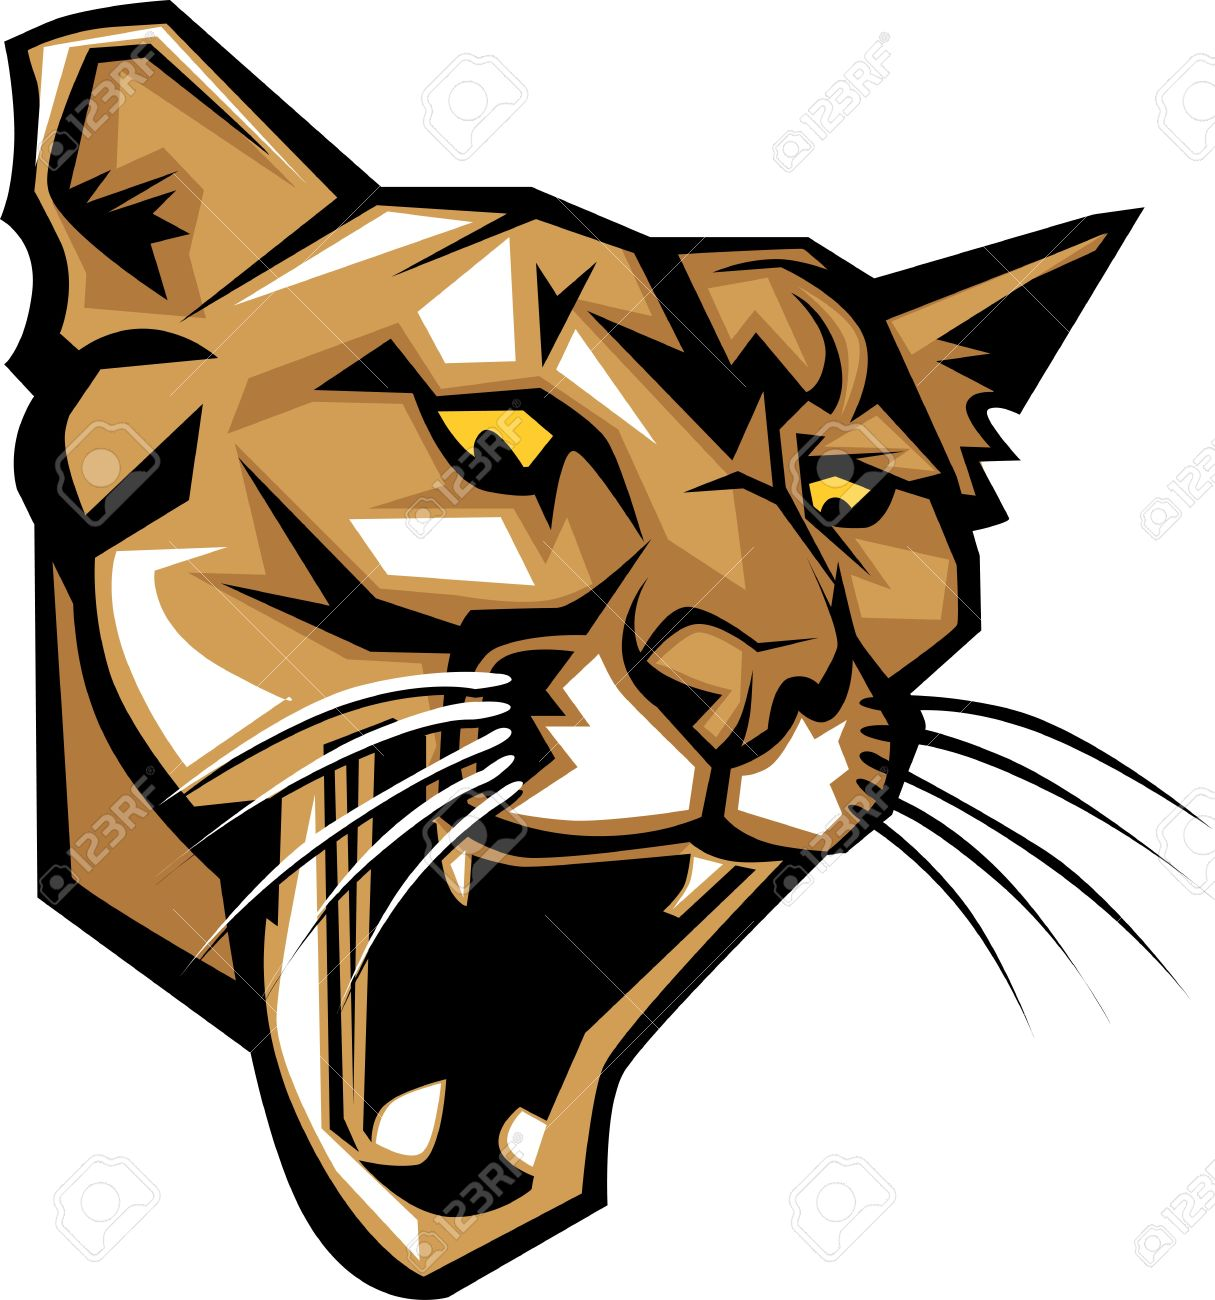 graphic vector mascot image of a mountain lion head royalty free rh 123rf com mountain lion clip art free mountain lion head clipart